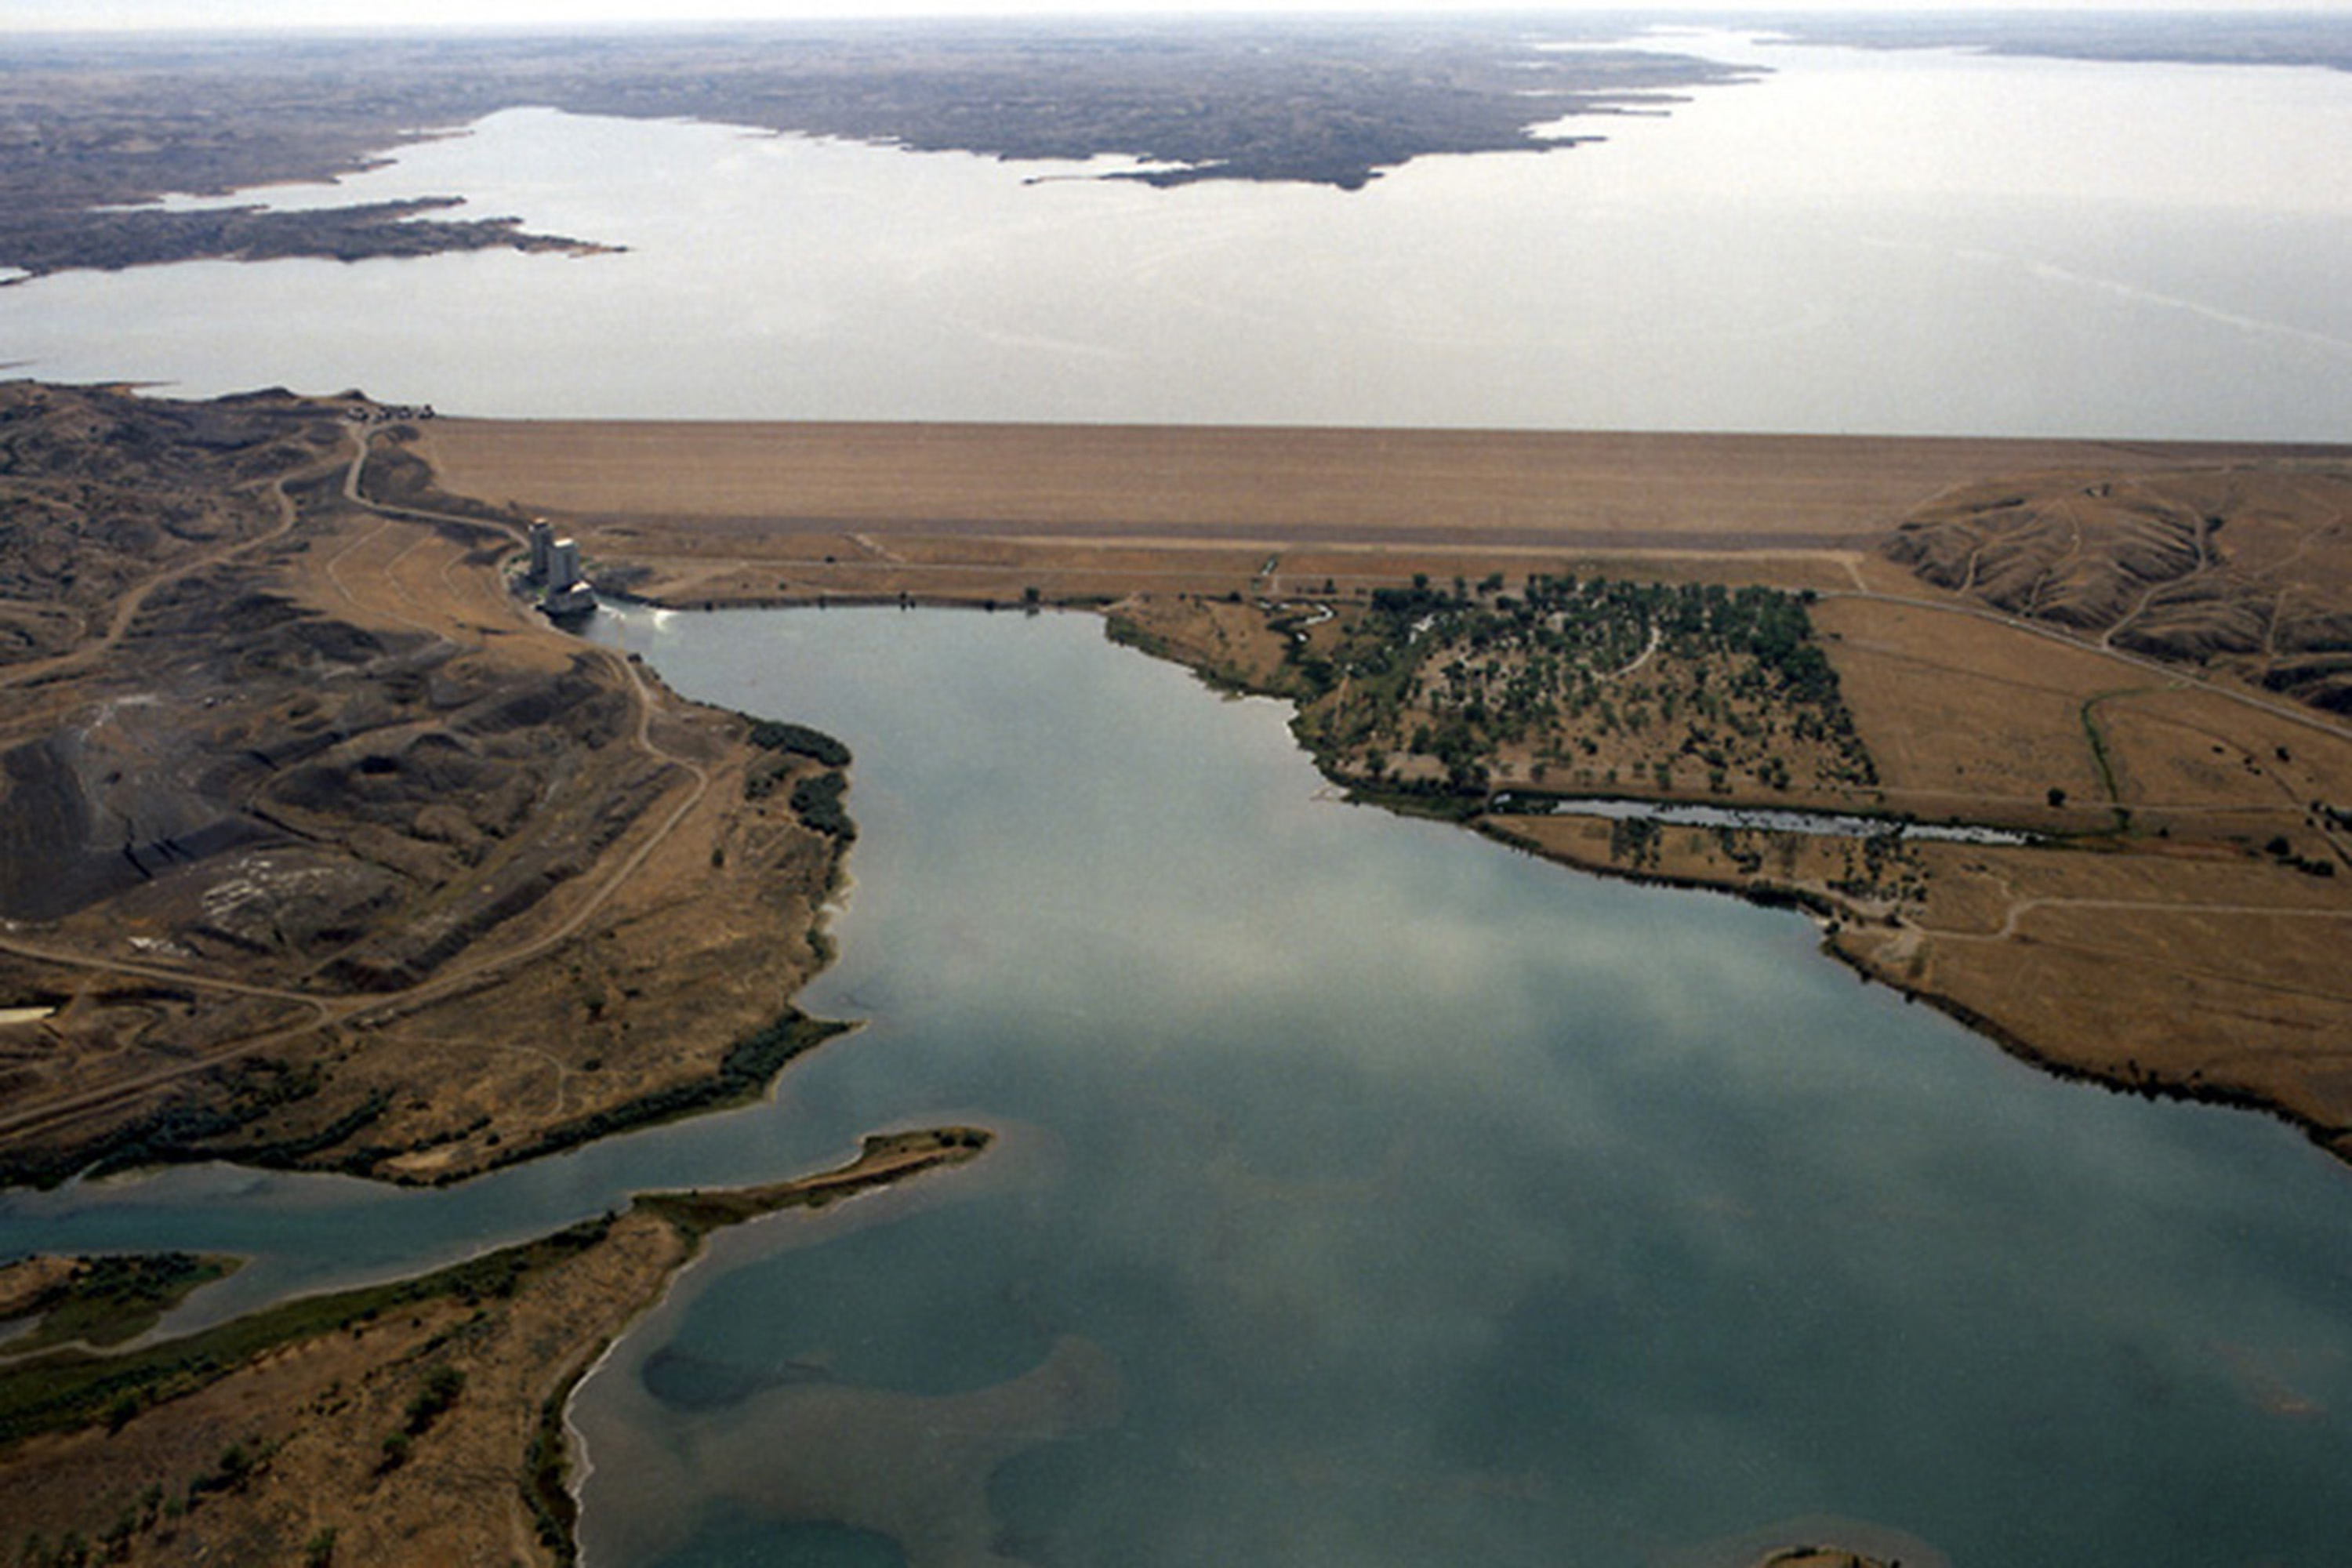 Image of Fort Peck Dam with arial views of the lake and land around the dam.